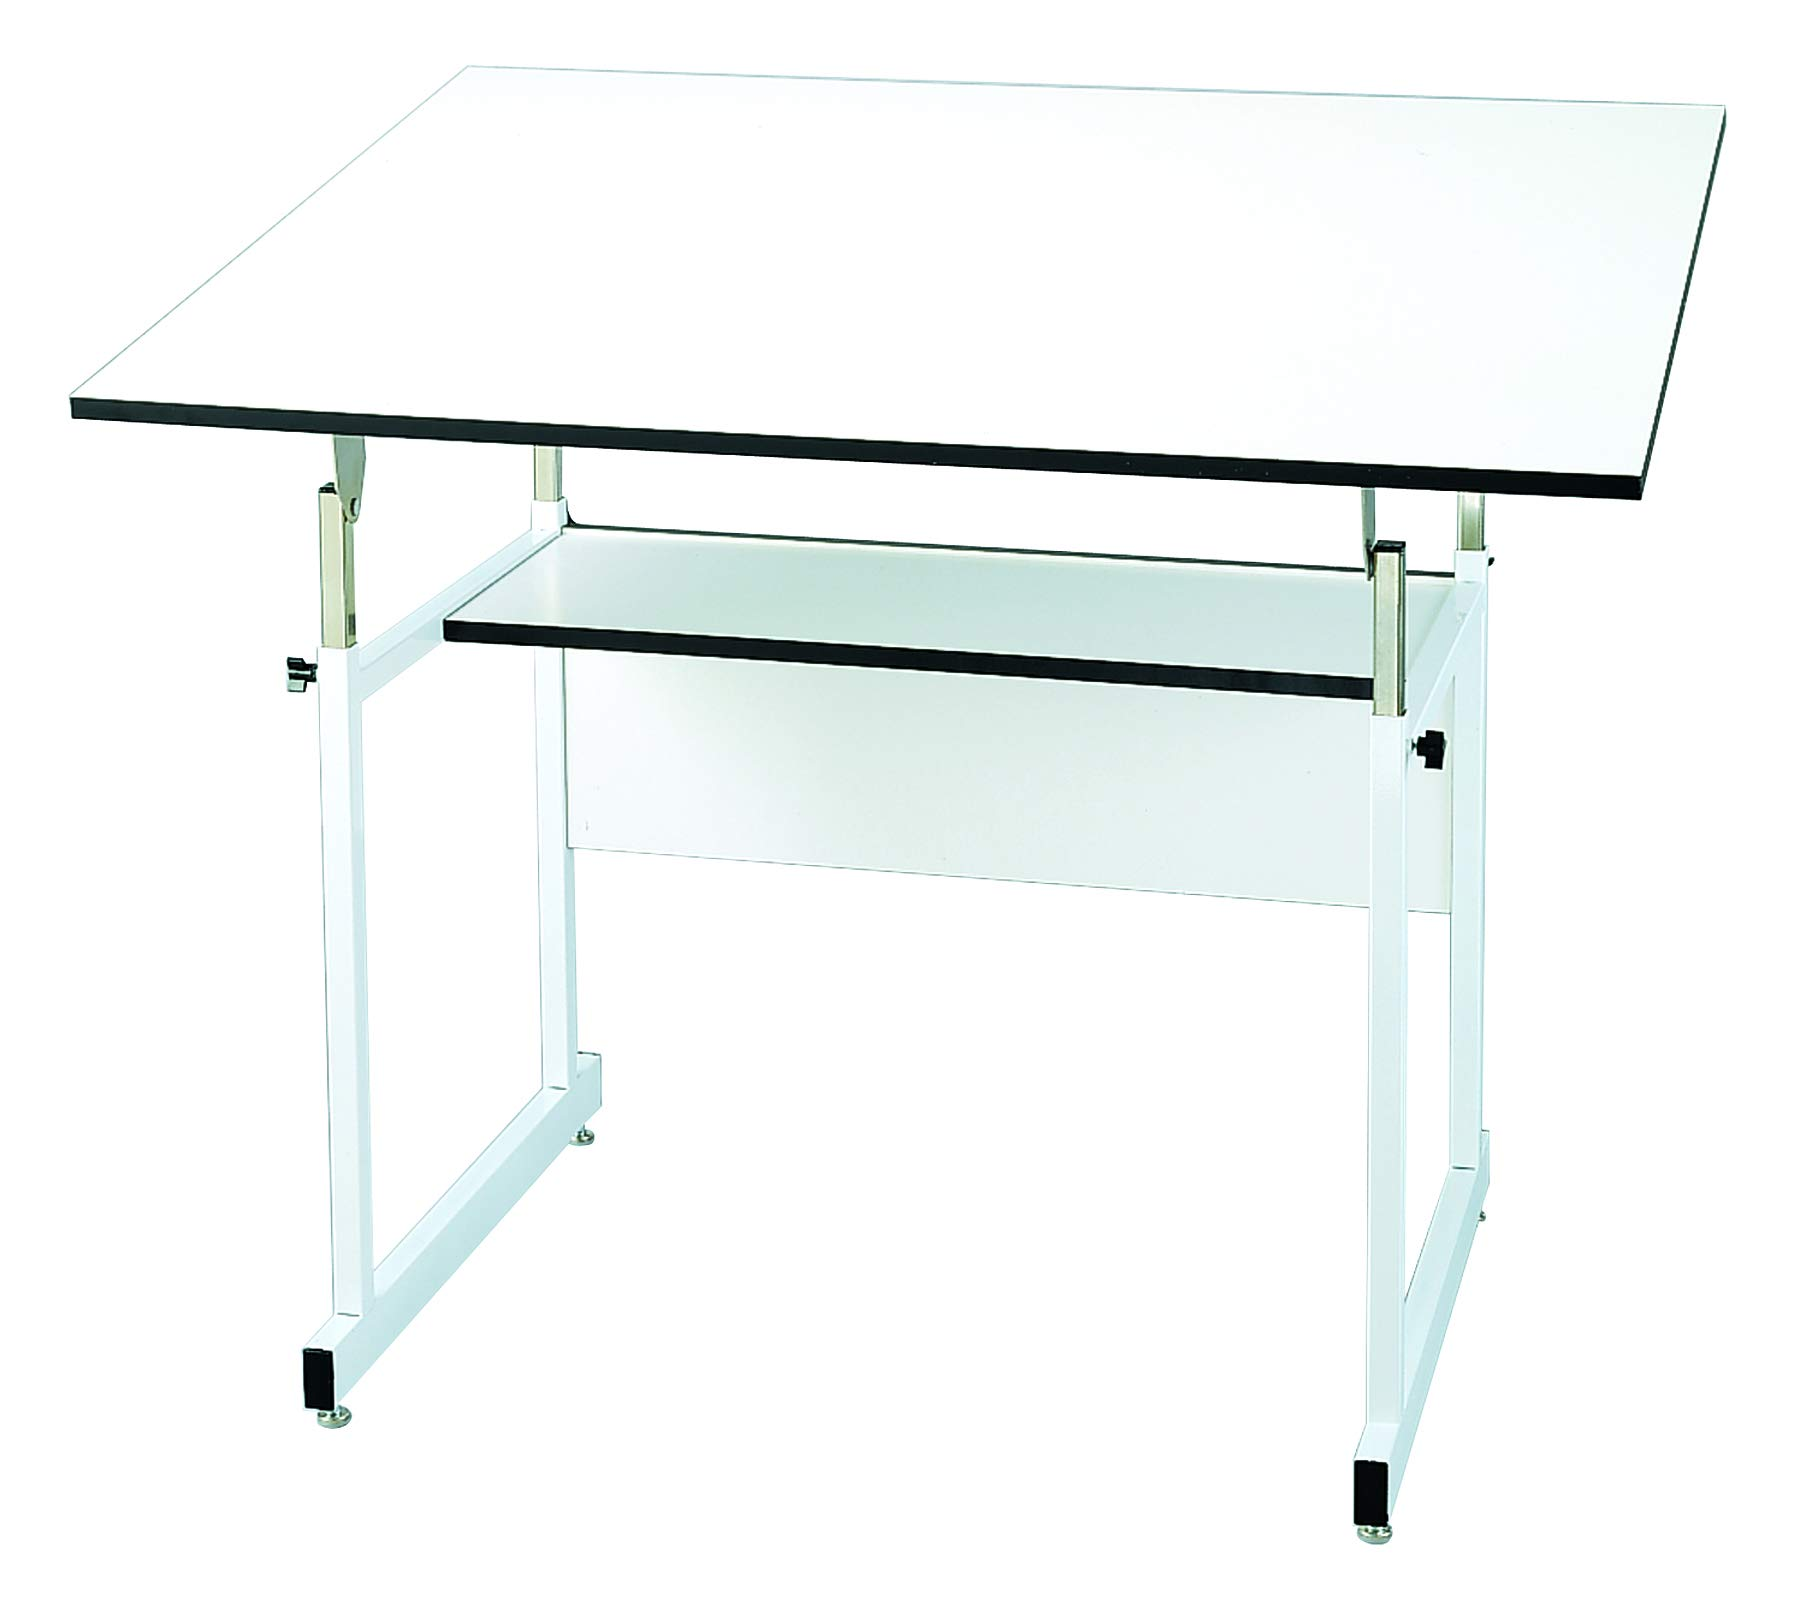 Alvin WMJ48-4-XB WorkMaster Jr. Table, White Steel Base/White Top 36'' x 48'', Warp-Free Melamine Board, Angle Adjusts from Horizontal 0° to 35°; Height Adjusts 29'' to 44'' in Horizontal Position by Alvin